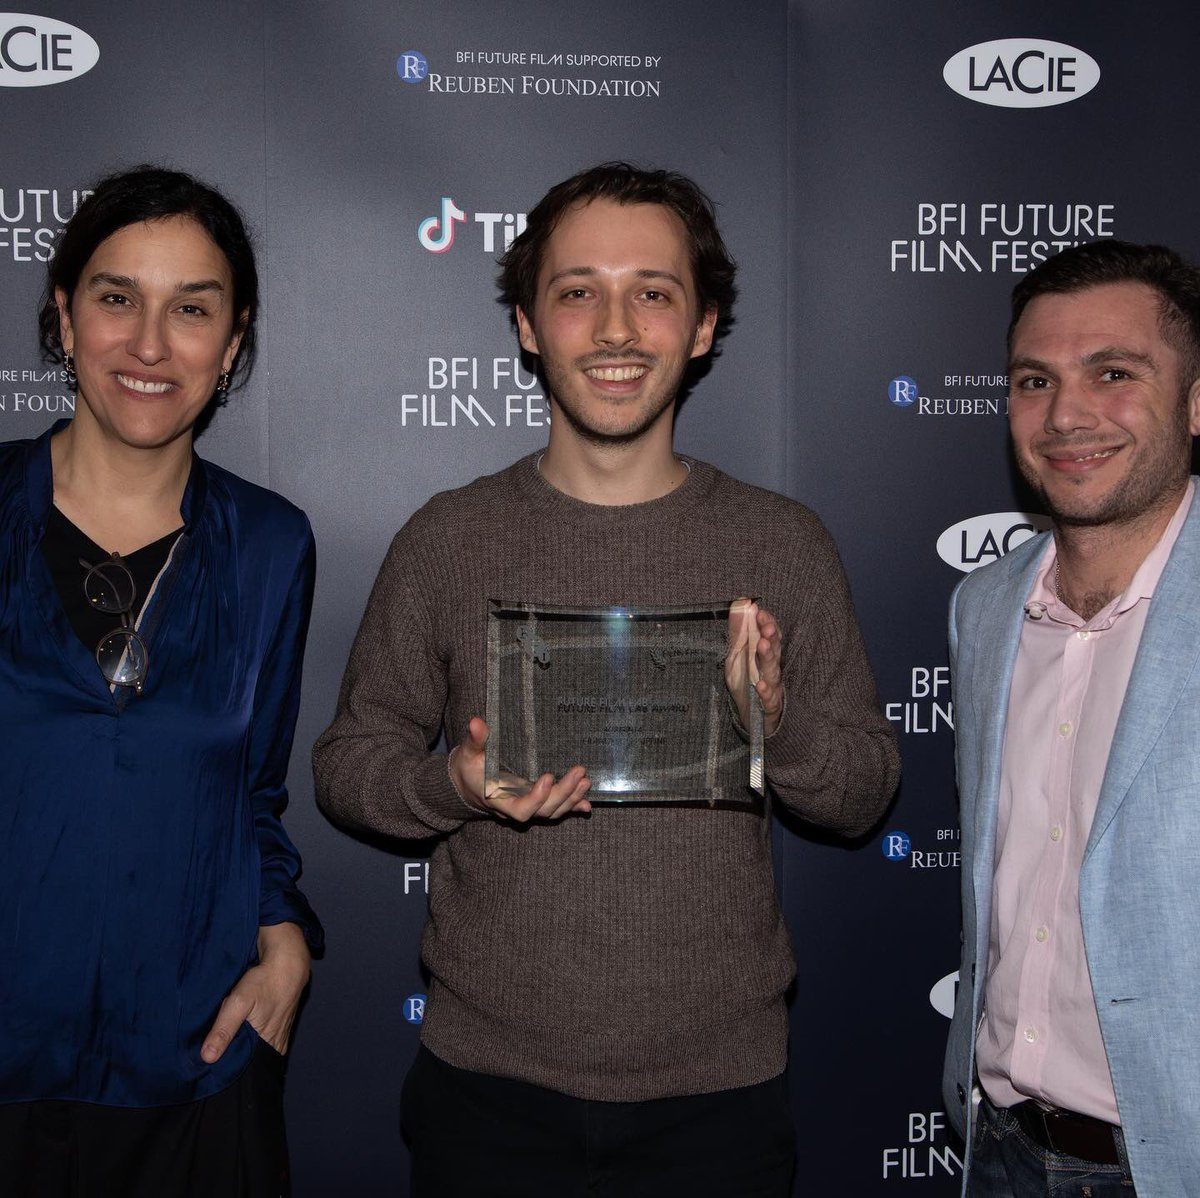 WIN! @virginiafilm won the Future Film Lab Award at the brilliant @BFI #FutureFilmFest 2020. Thank you so much to the BFI, the jury and for the fantastic support by @LaCieTech! So excited about the next projects. https://t.co/KgjDjoggy2